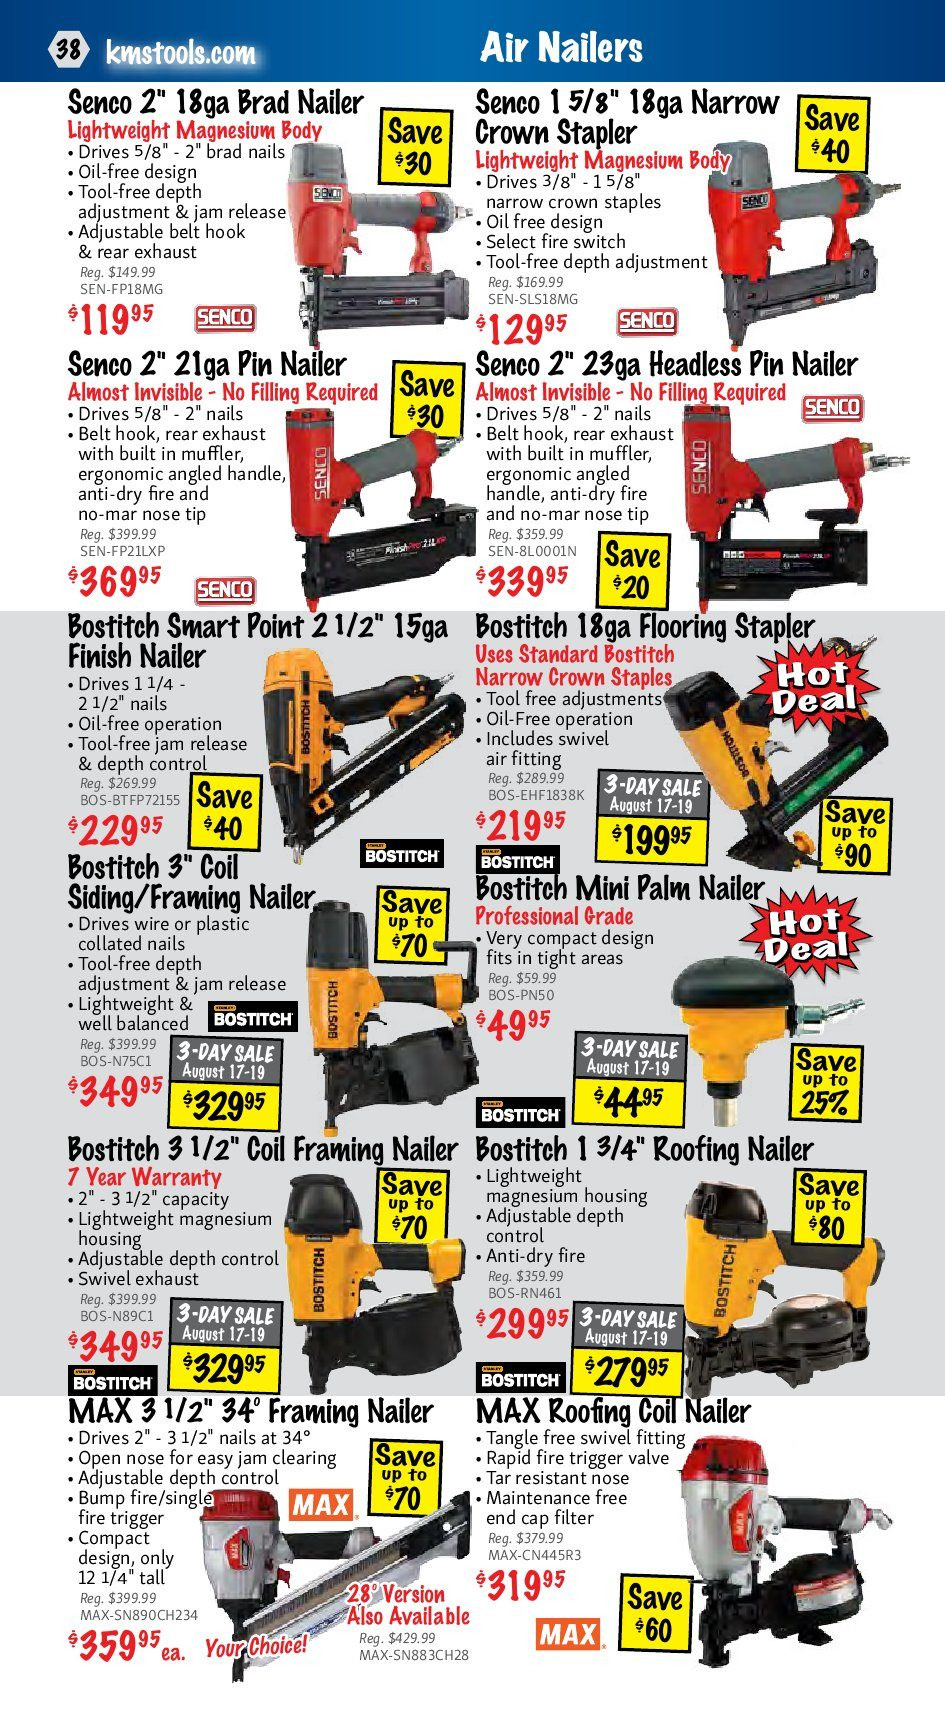 bostitch ehf1838k hardwood floor stapler of kms tools weekly flyer back to trades sale aug 1 31 with regard to kms tools weekly flyer back to trades sale aug 1 31 redflagdeals com